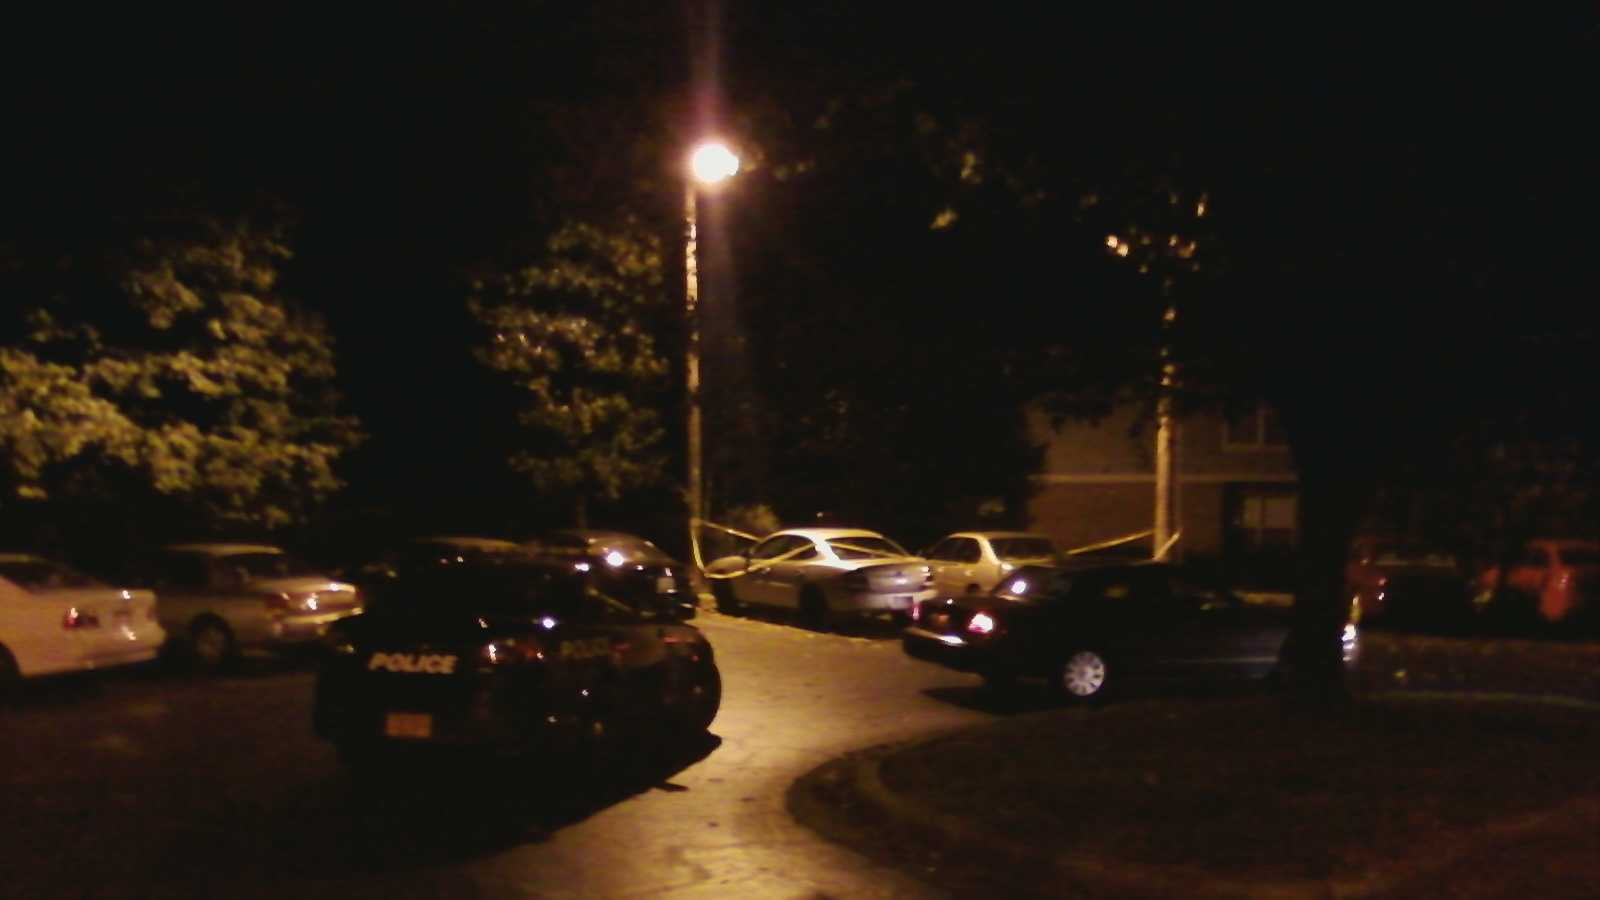 Police are investigating a shooting that happened on Big Tree Way in Greensboro Friday morning.